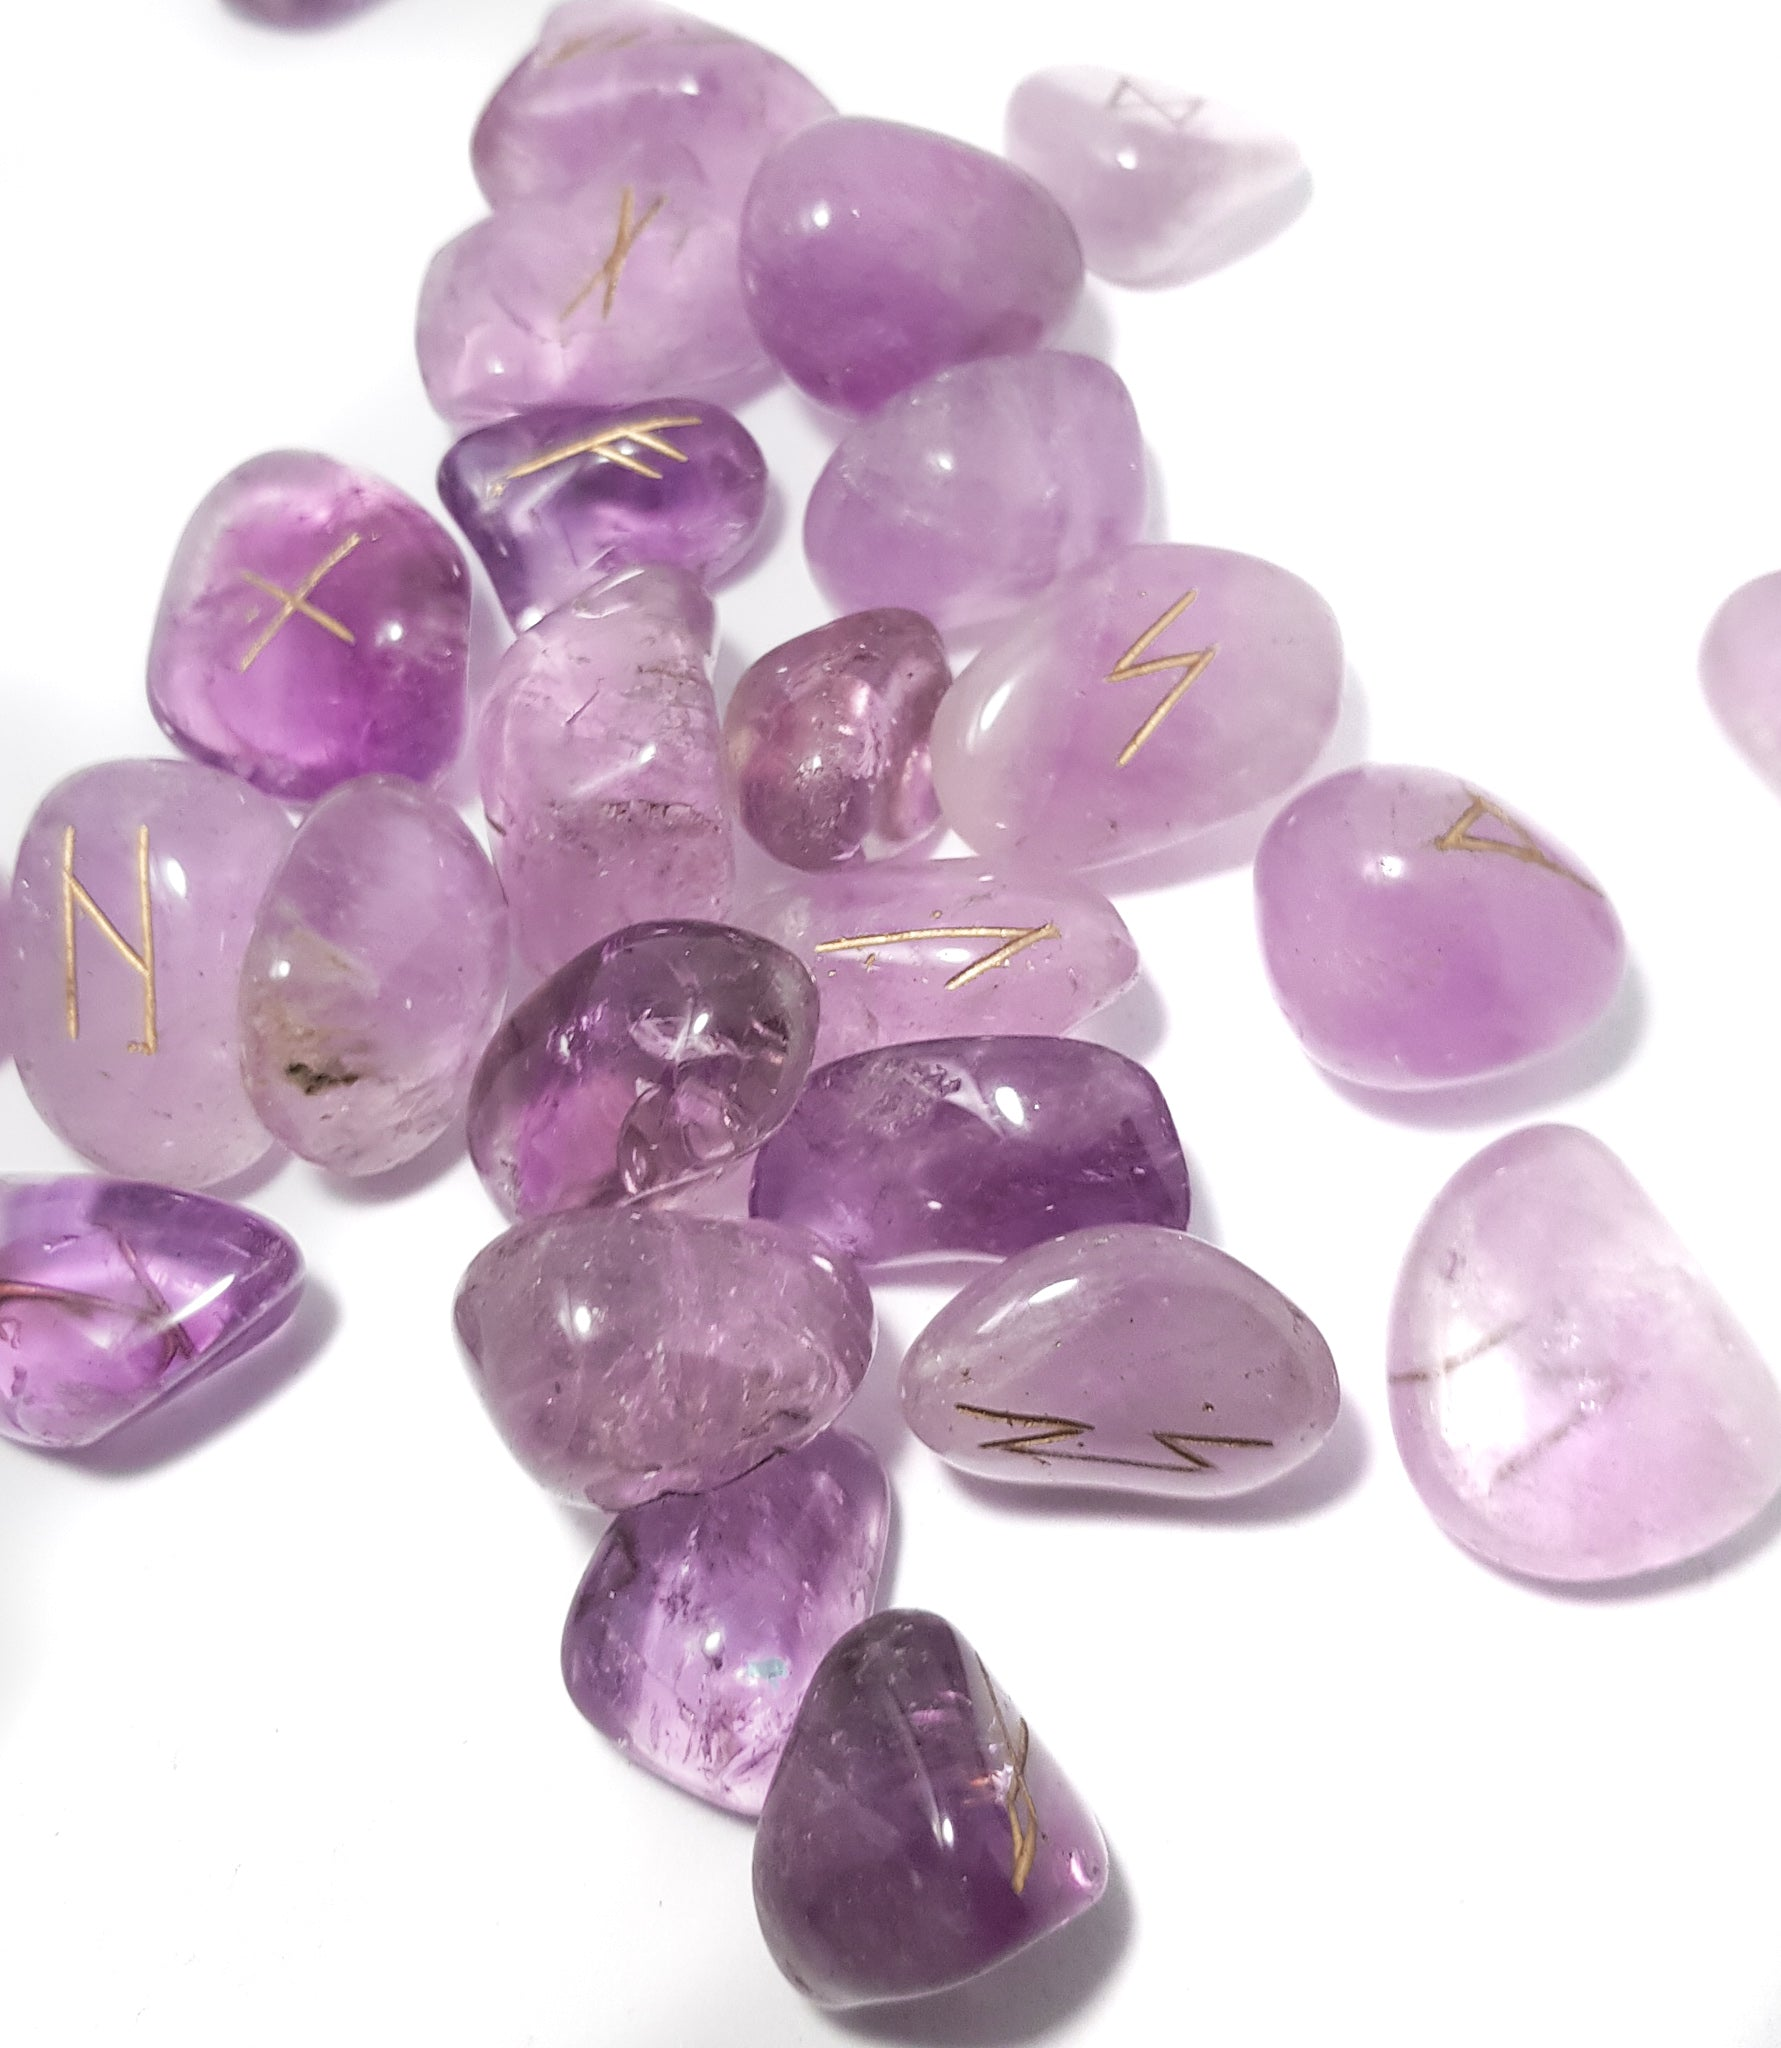 scattered set of amethyst rune stones. The pieces are purple the runic inscriptions are gold. -- science of magic